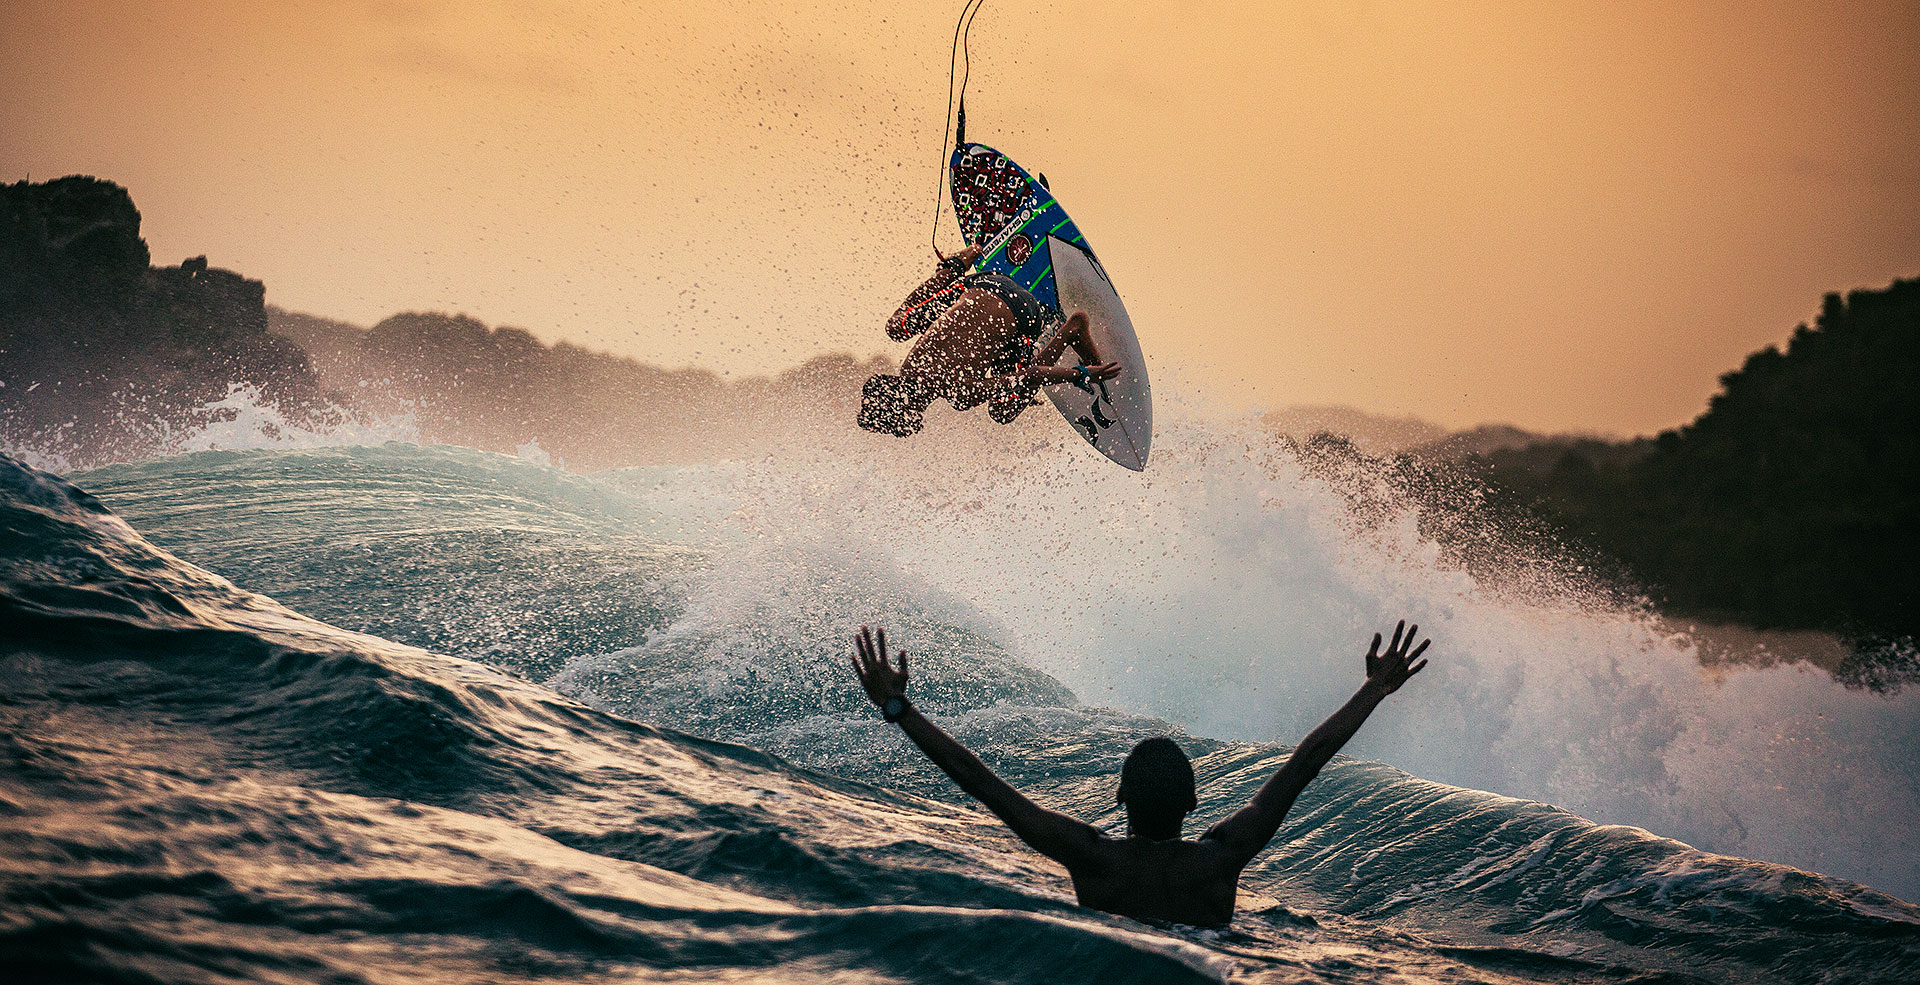 The Best Photos of 2016: Surf, Travel, & Adventure Photography